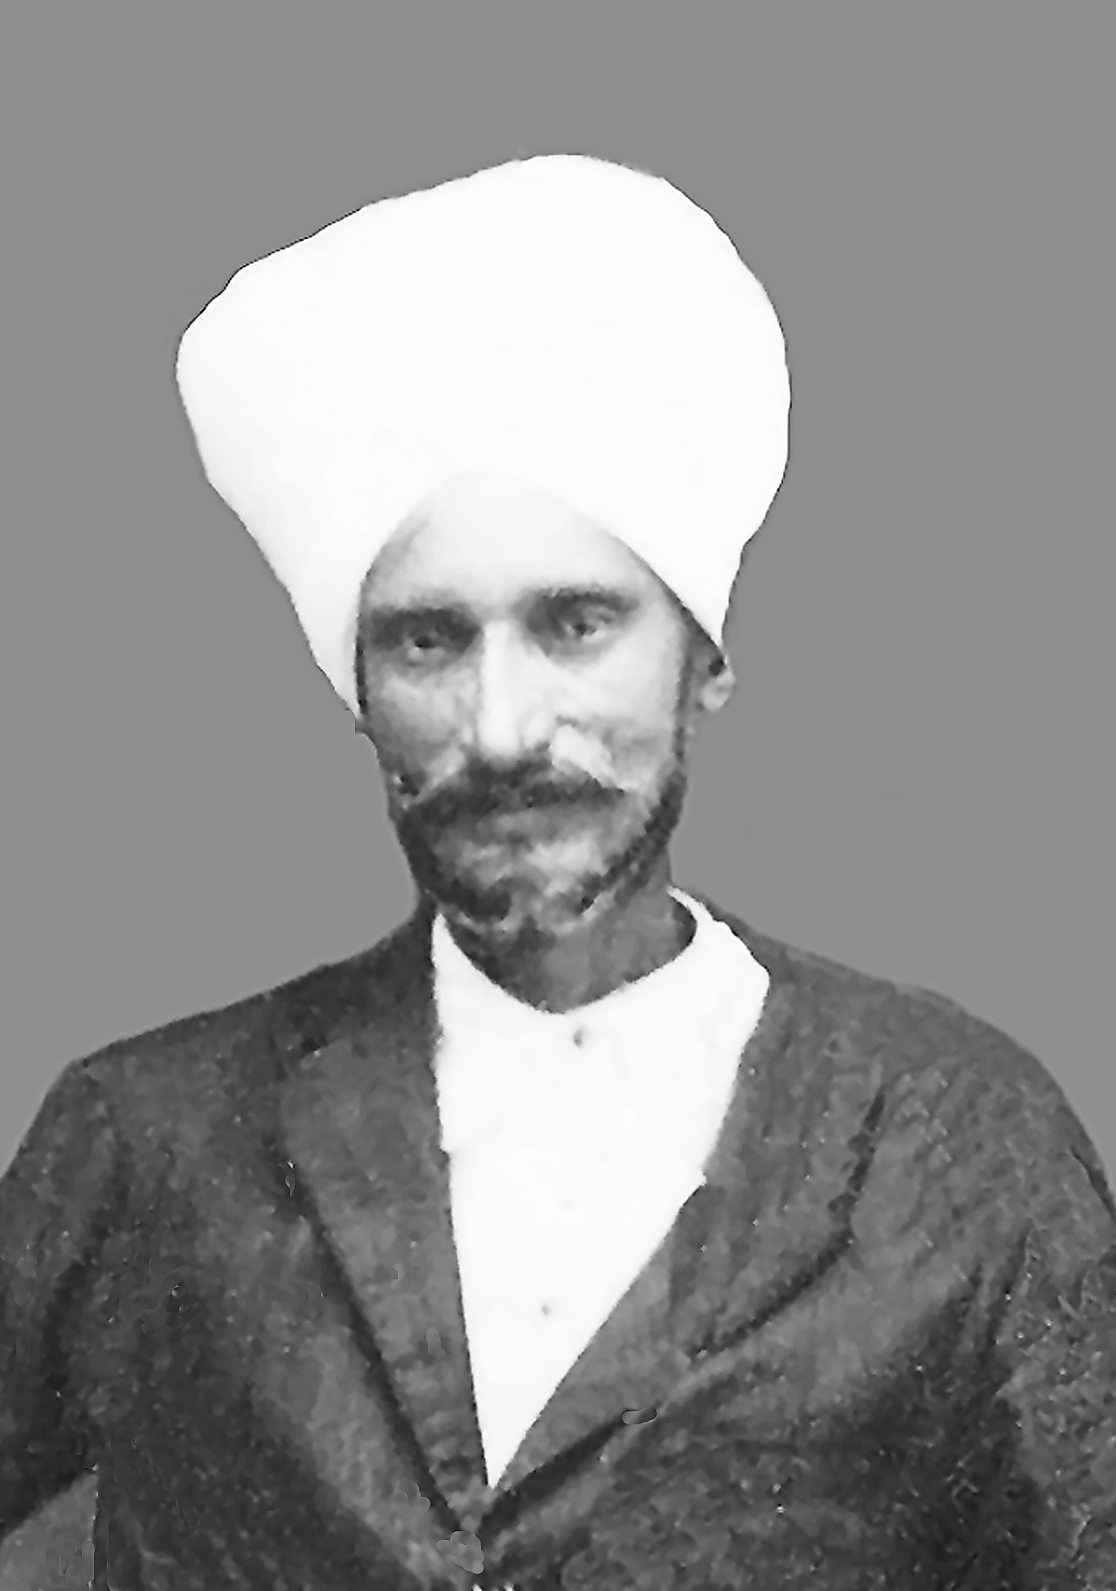 Mahee Singh Dhillon, a sepoy who joined the Perak Armed Police in 1878 and retired as Chief Constable of Penang. Photo: Athiavan Singh Dhillon